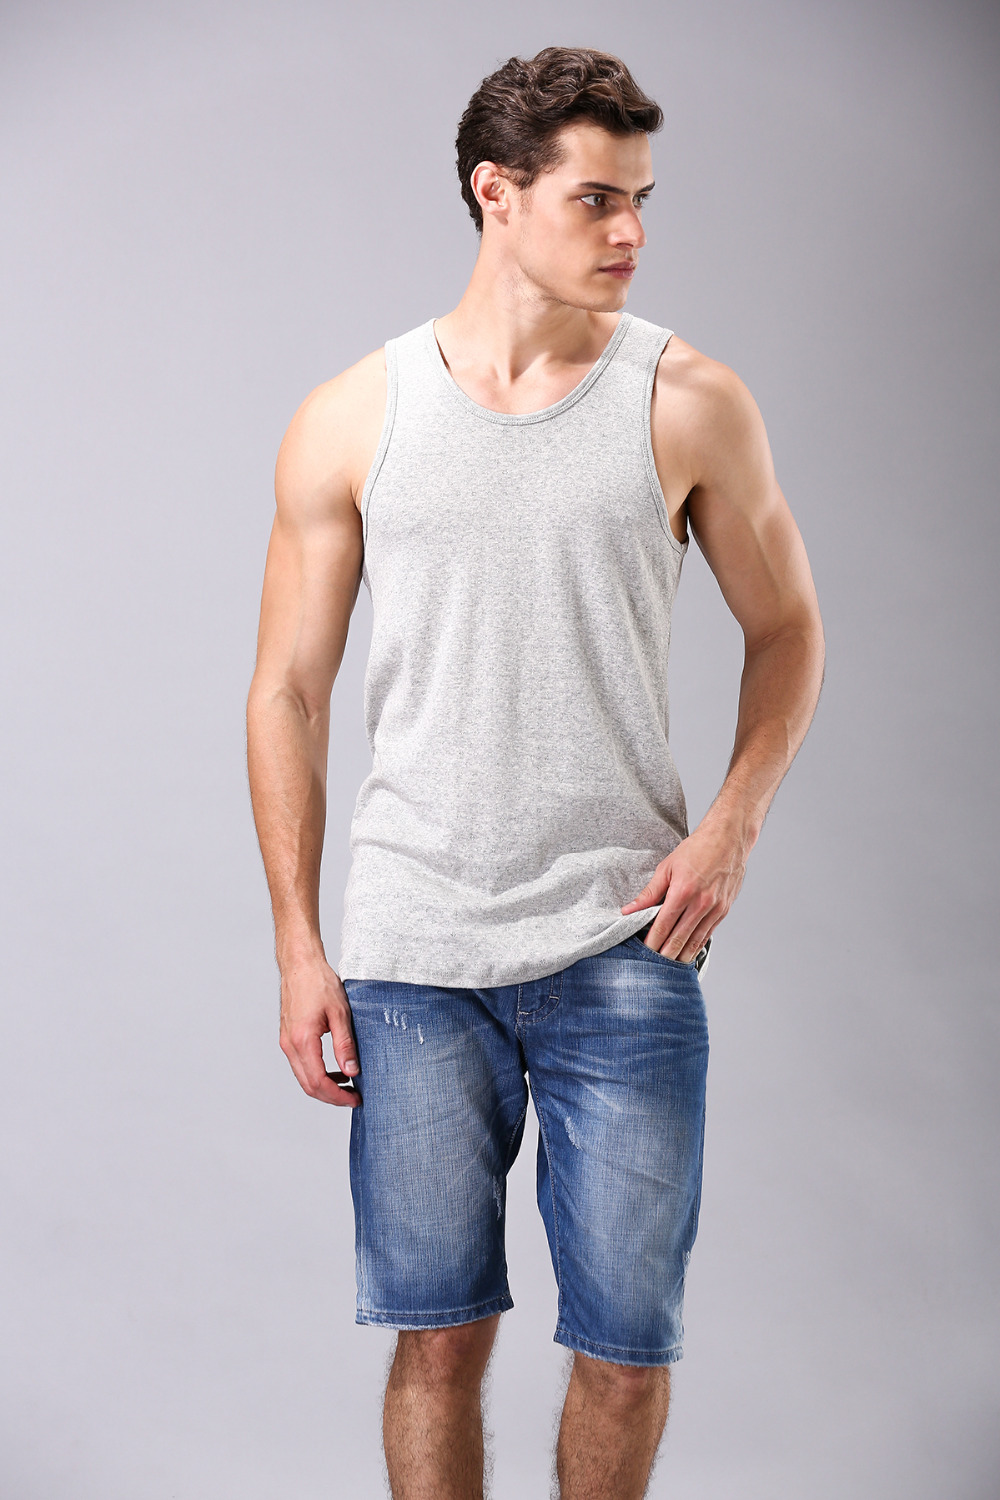 New Arrival Grey Stringer Tank Top Men Bodybuilding